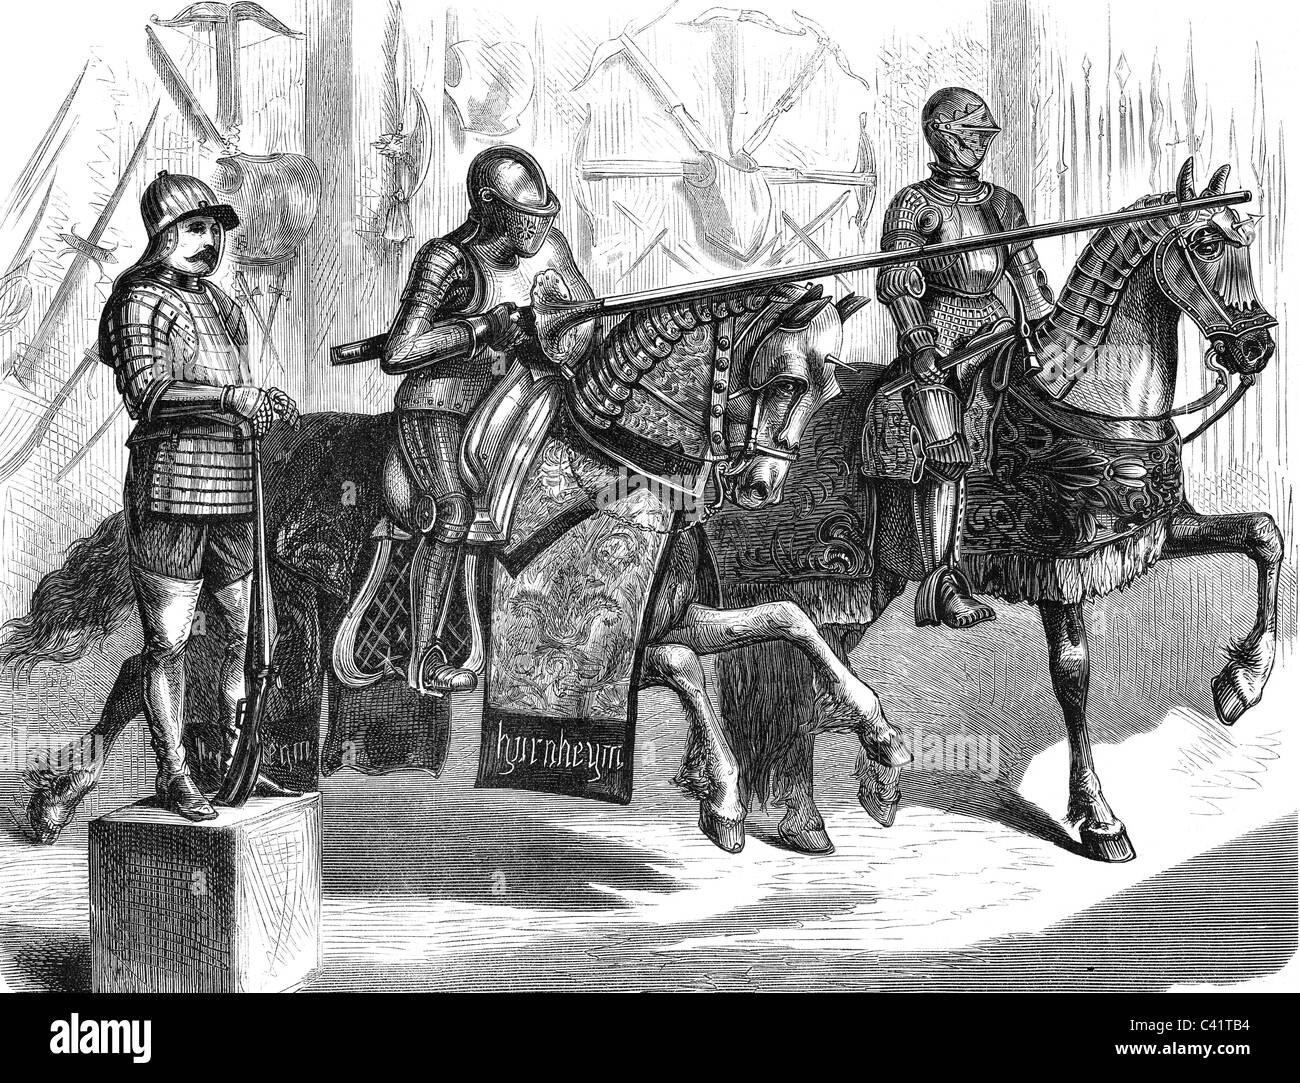 Suits Of Armour Stock Photos & Suits Of Armour Stock Images - Alamy